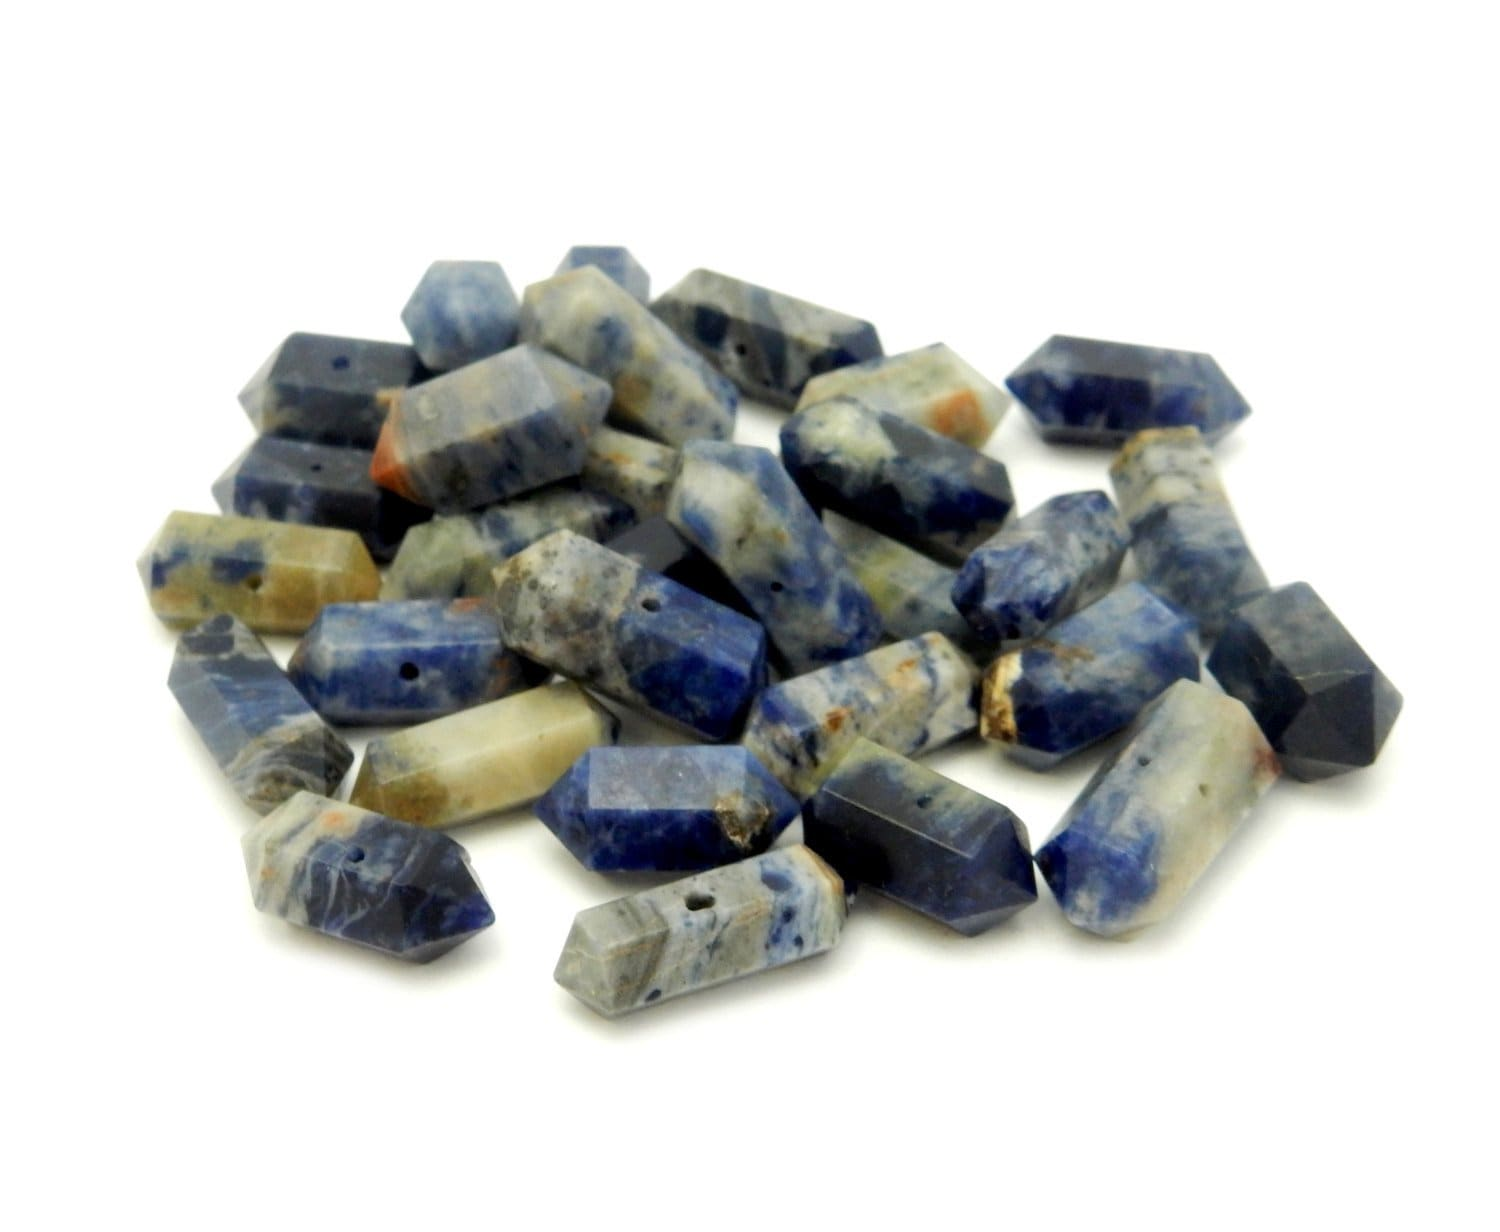 Double Terminated - Petite Sodalite Double Terminated Pencil Point Center Drilled Bead By 1, 5 Or 10 Pieces - Wire Wrapping - Chakra - Reiki(RK38B16-02)